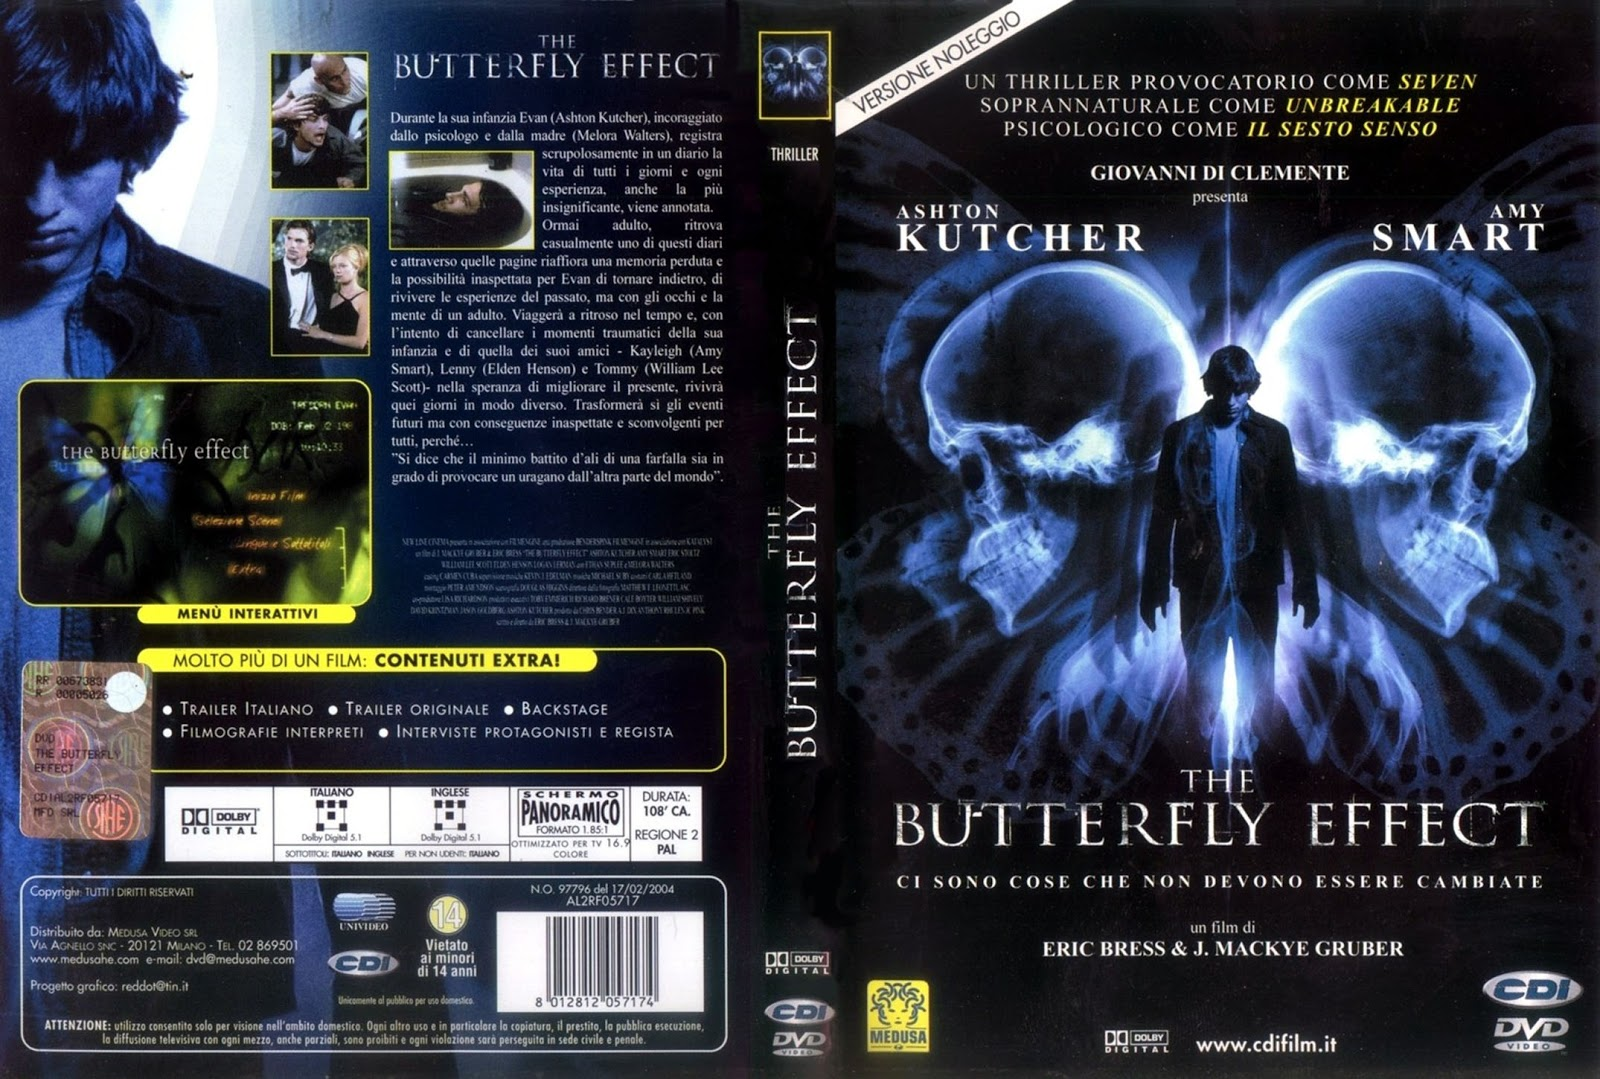 essay on butterfly effect Essays and criticism on david henry hwang's m butterfly - m butterfly david henry hwang.